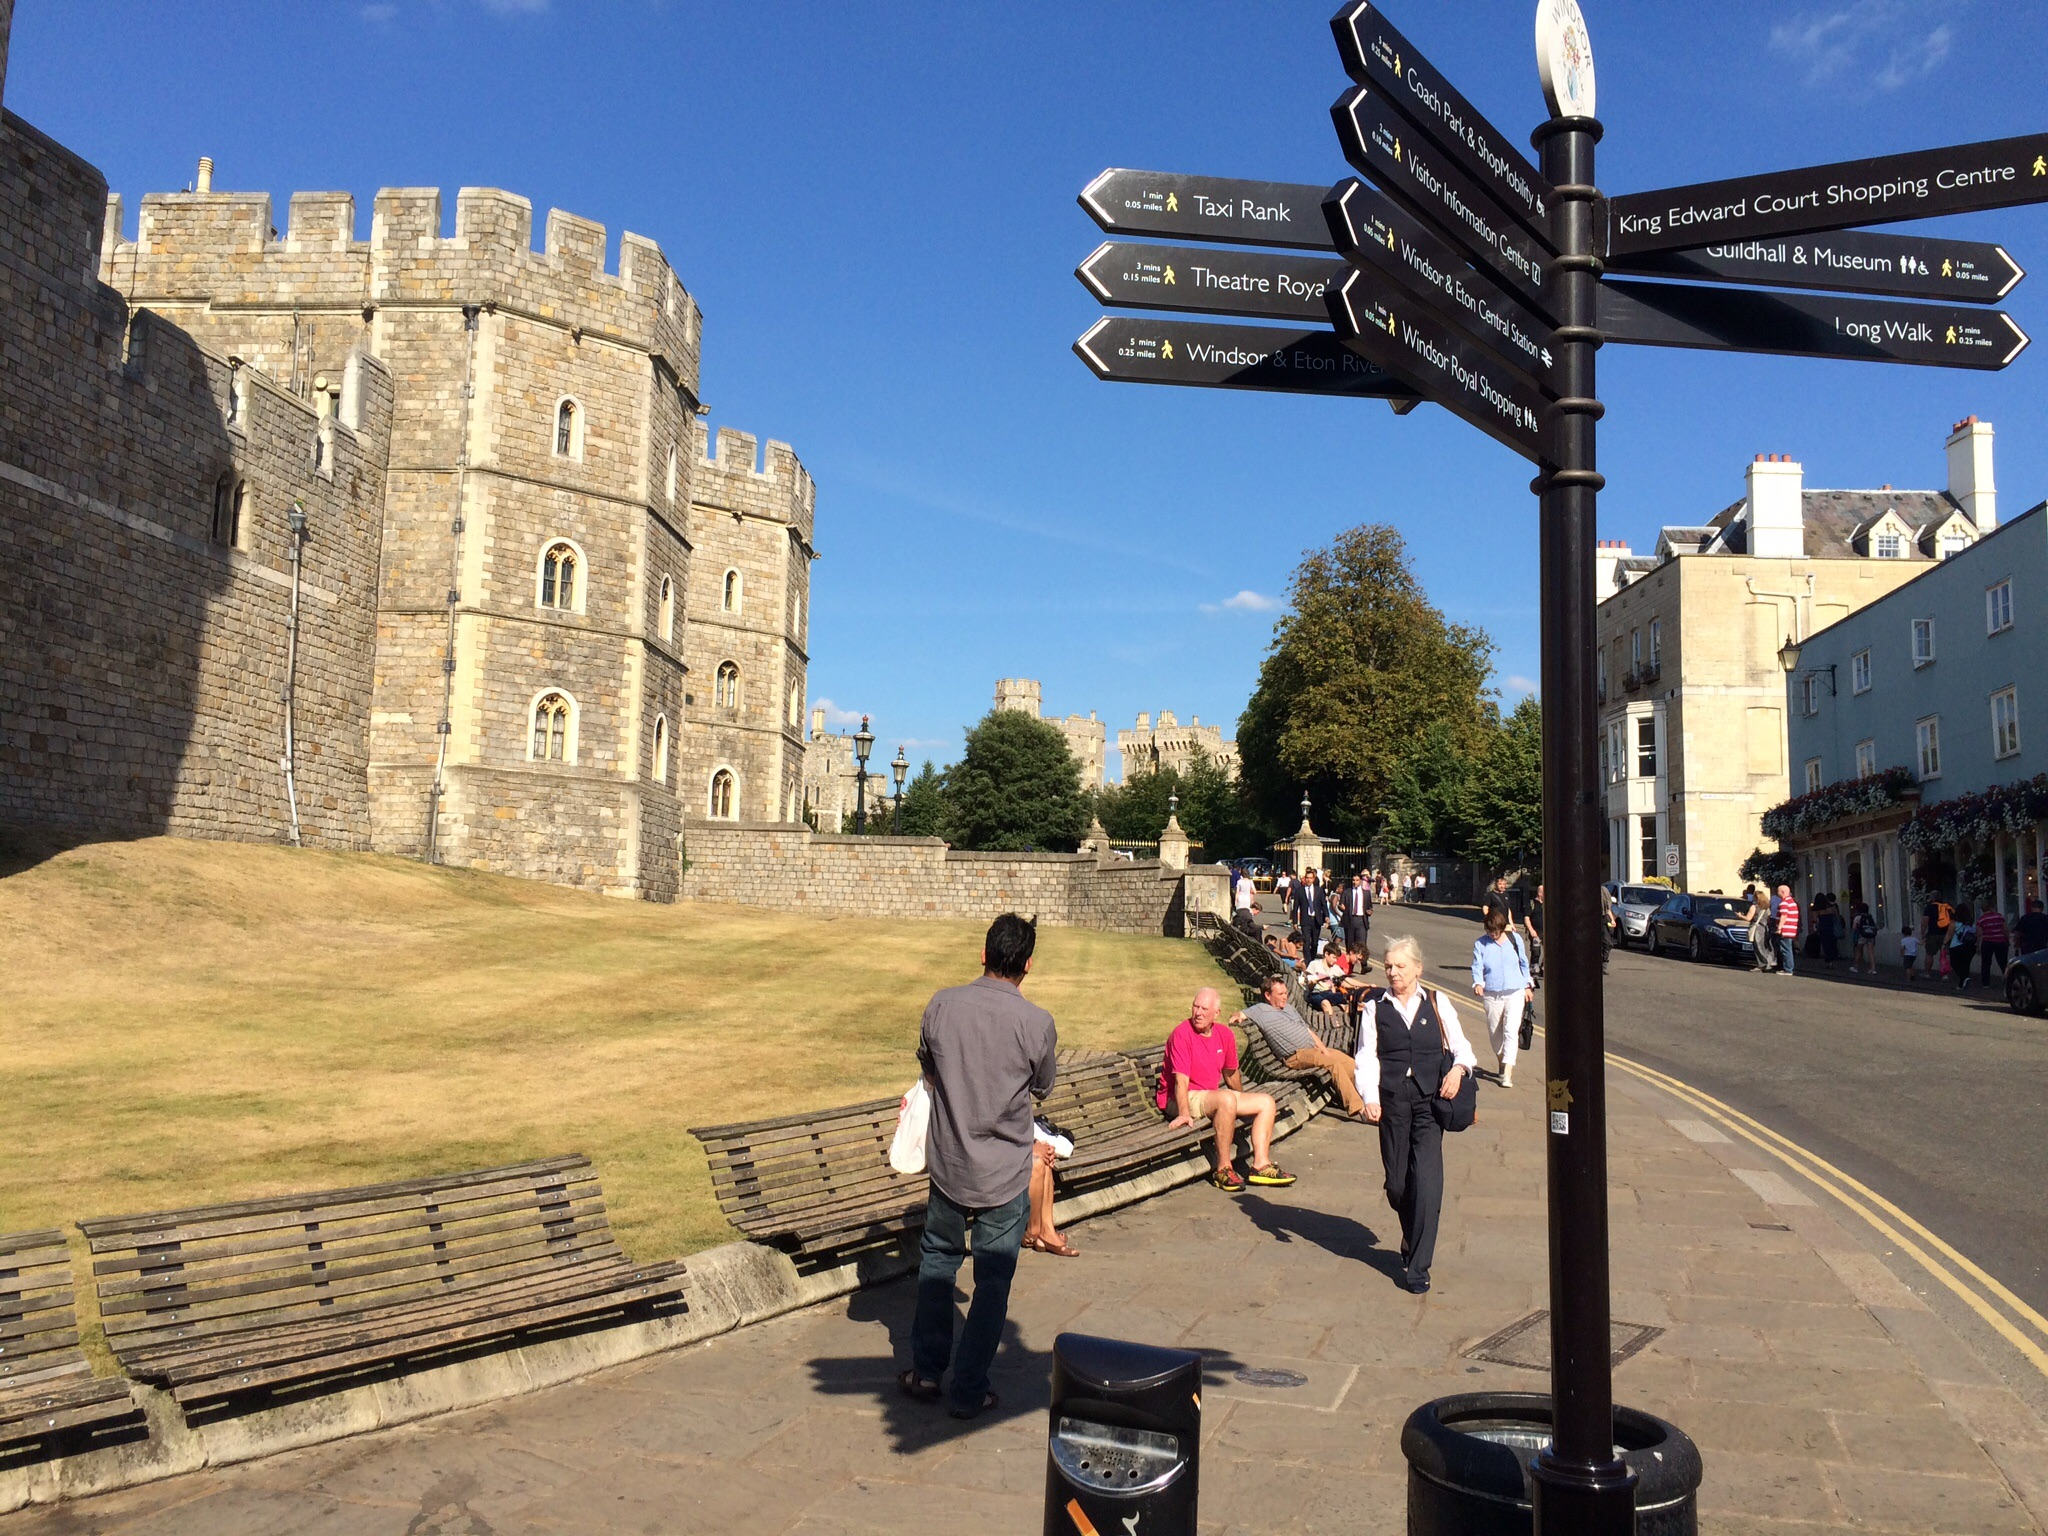 Our first close glimpse of Windsor Castle